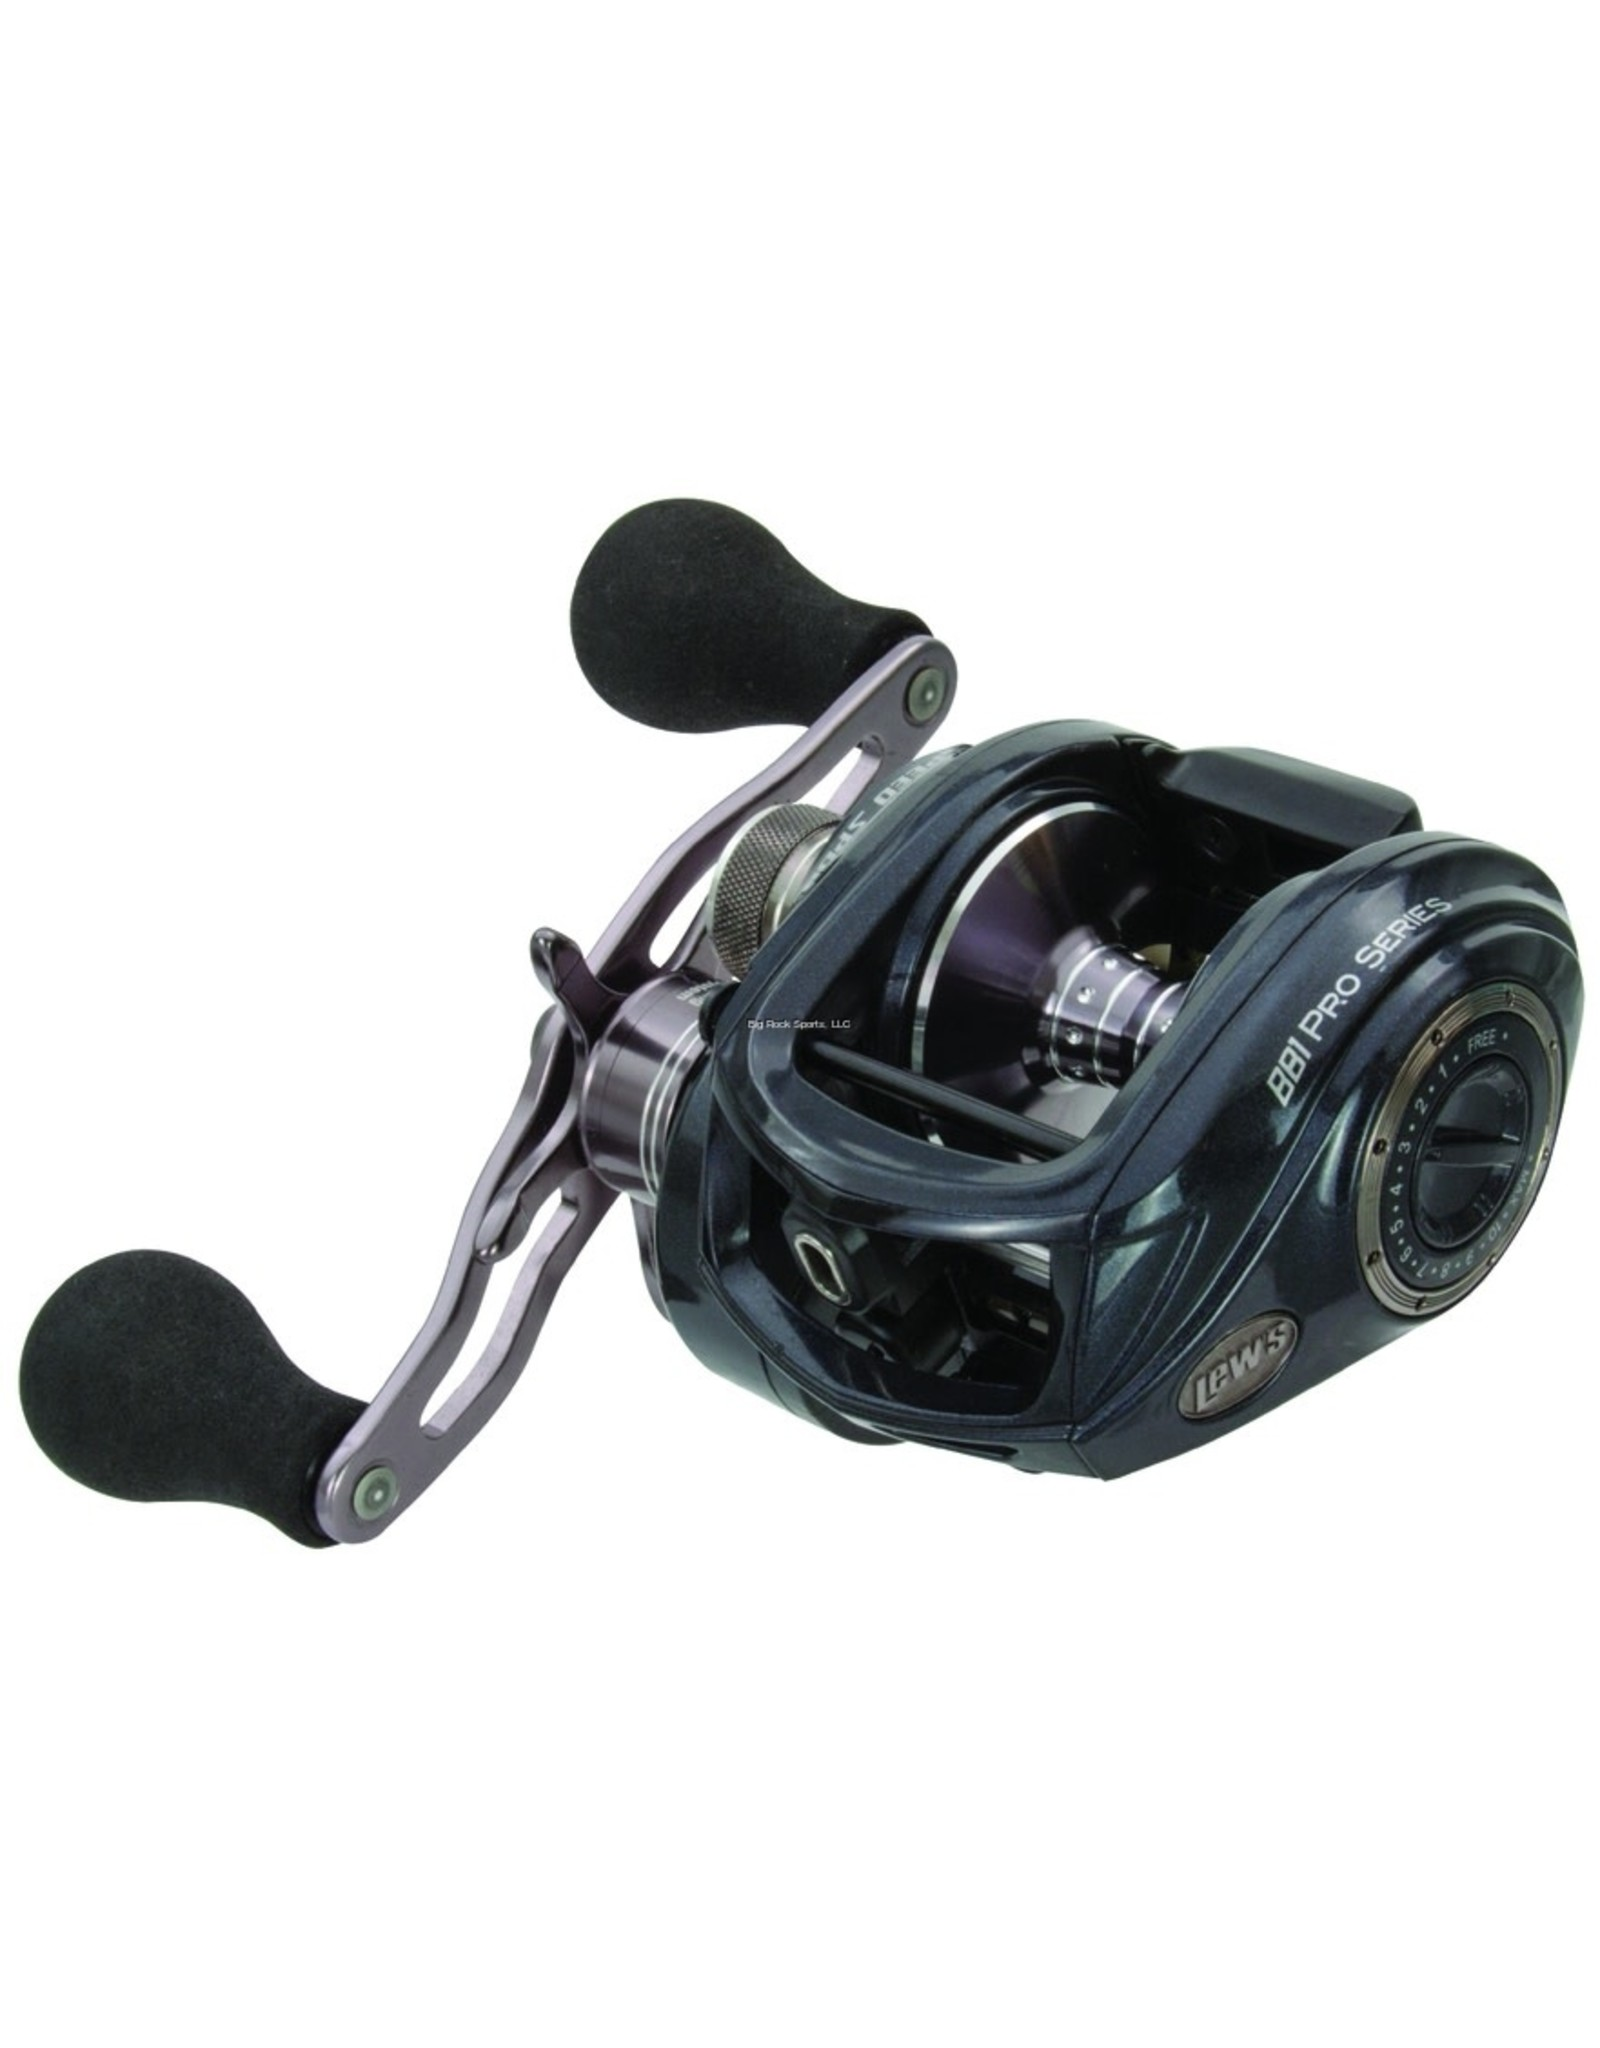 BB1 Pro Speed Spool Low Profile Baitcast Reel